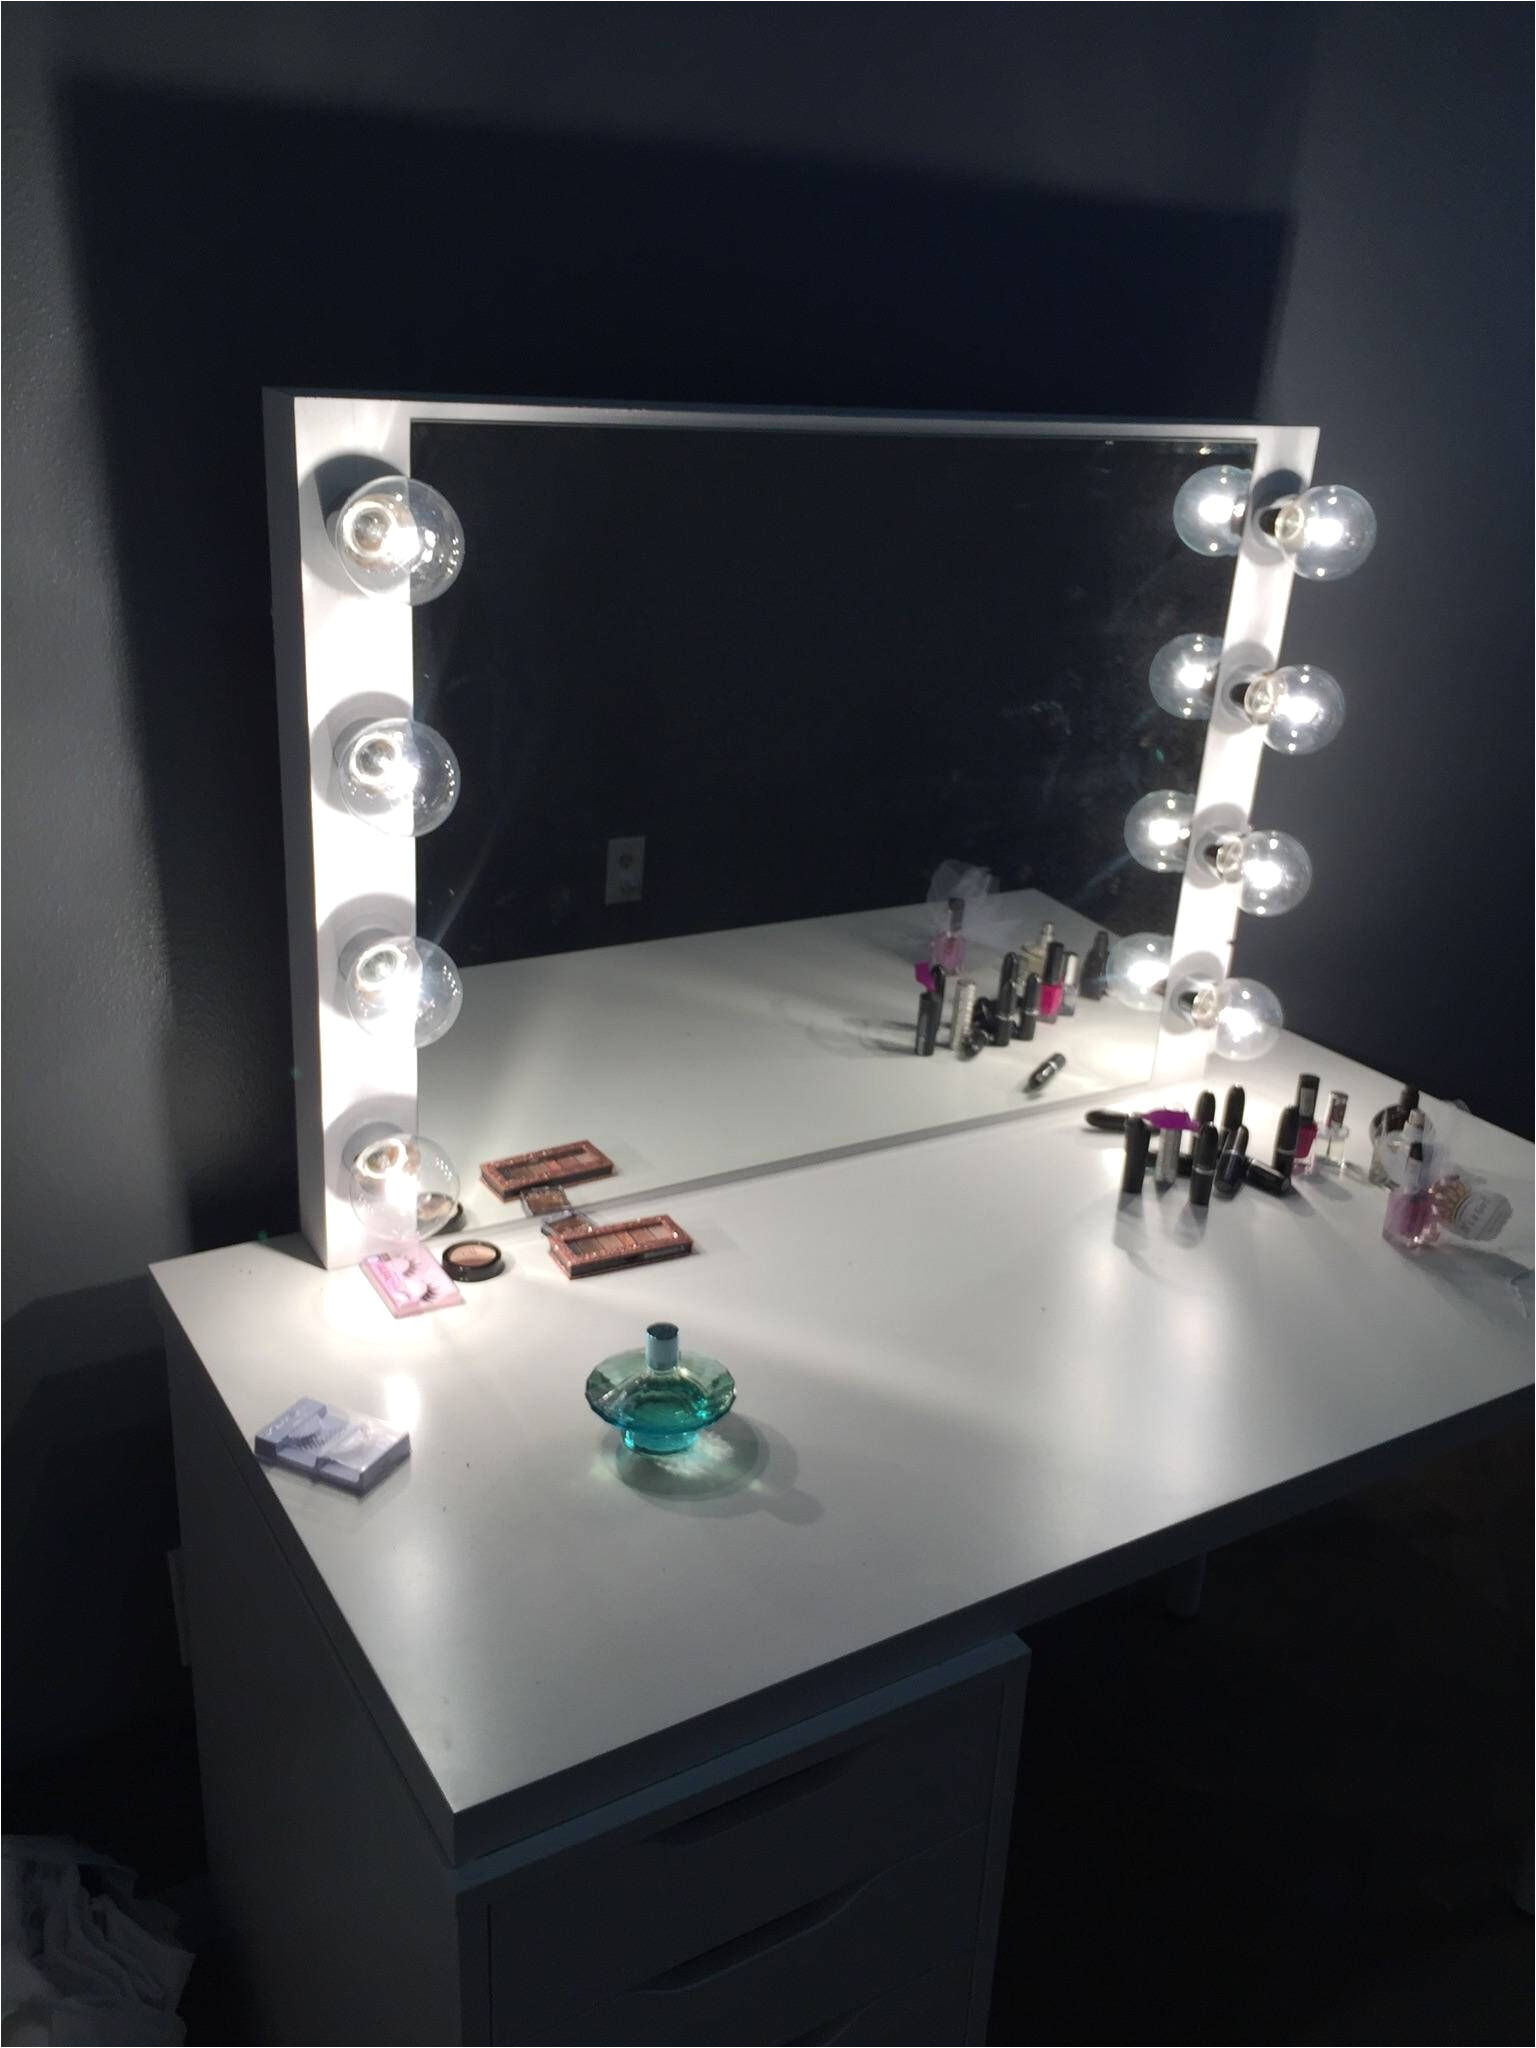 hollywood vanity mirror perfect for ikea vanity bulbs not included